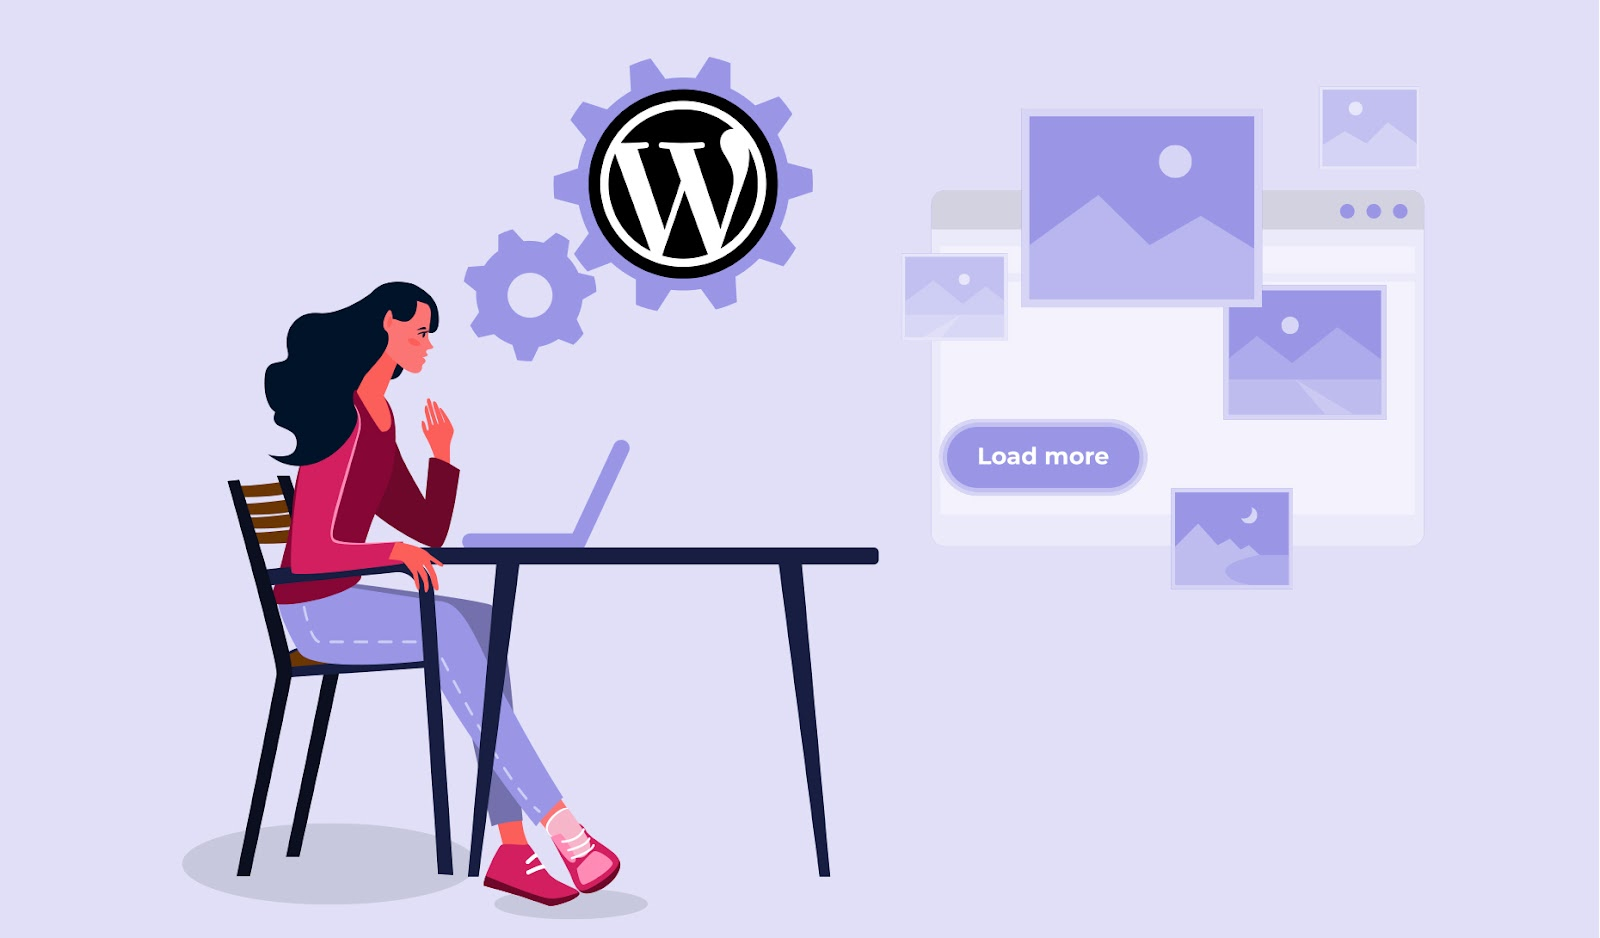 Illustration showing a person working at a laptop to make a WordPress website